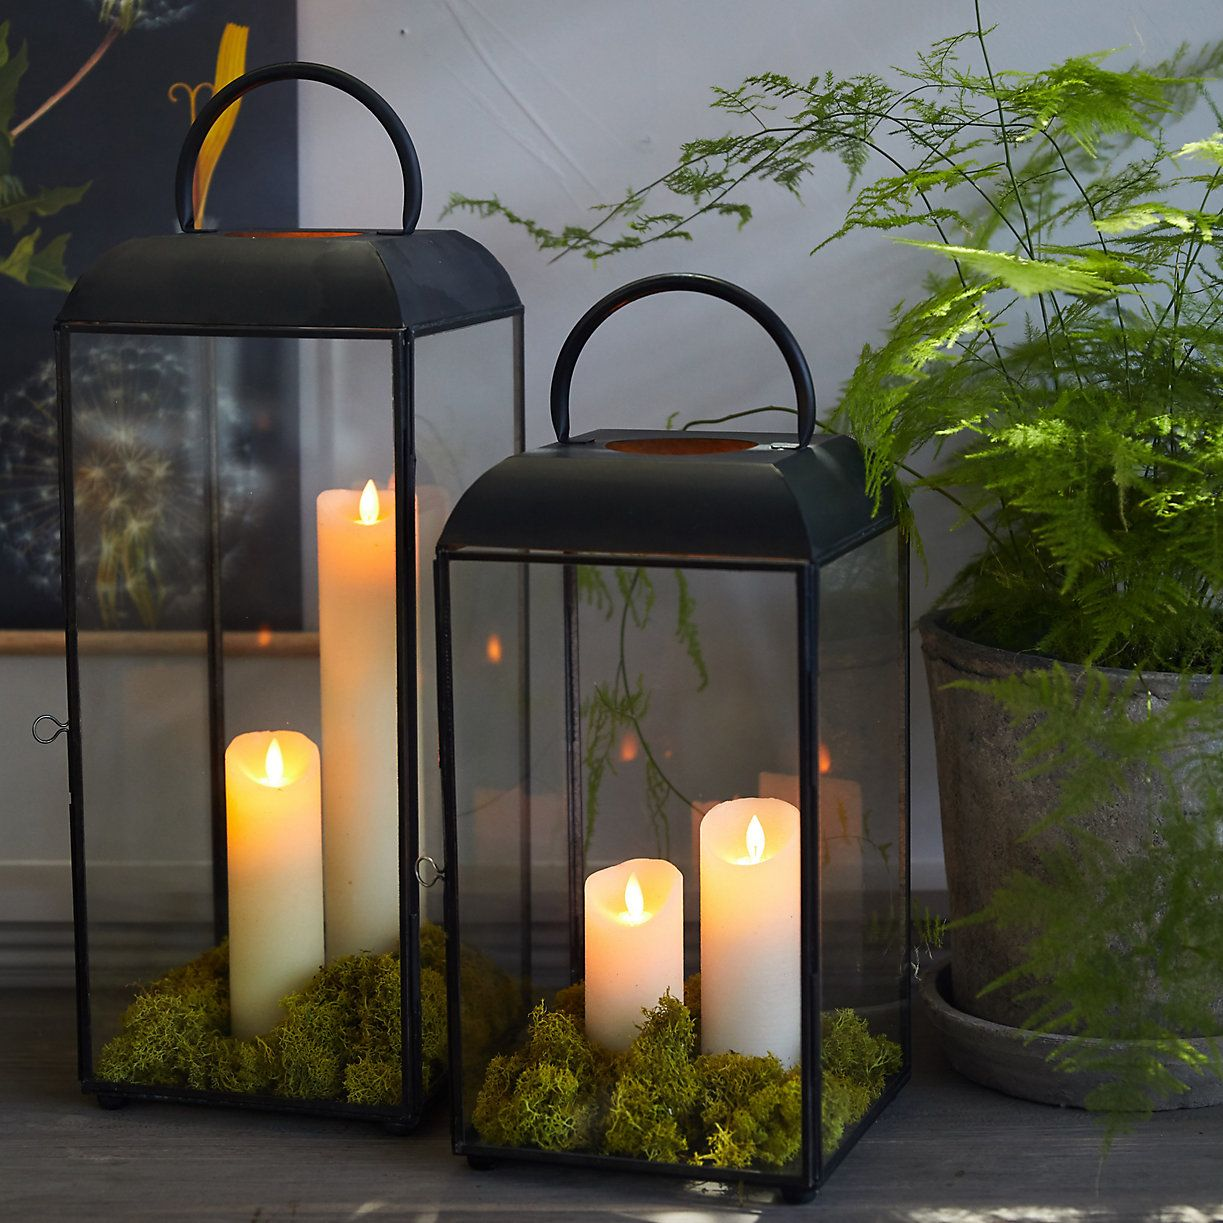 Rounded Dome Top Lantern Lantern Candle Decor Large Lantern Decor Indoor Lanterns Decor